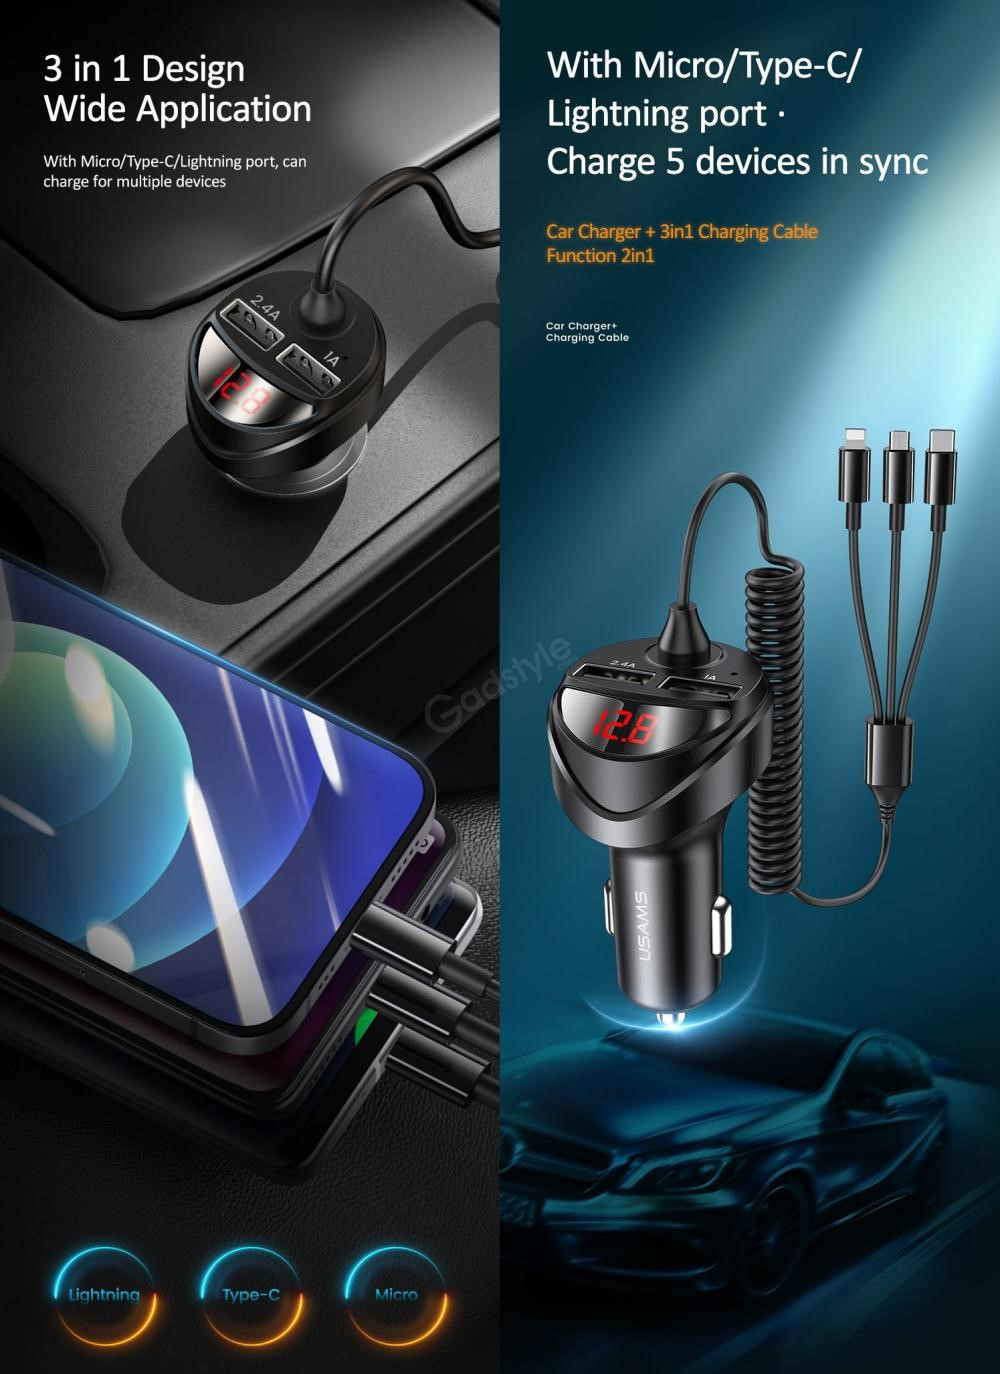 Usams Us Cc119 C22 3 4a Dual Usb Car Charger With 3in1 Spring Cable (6)